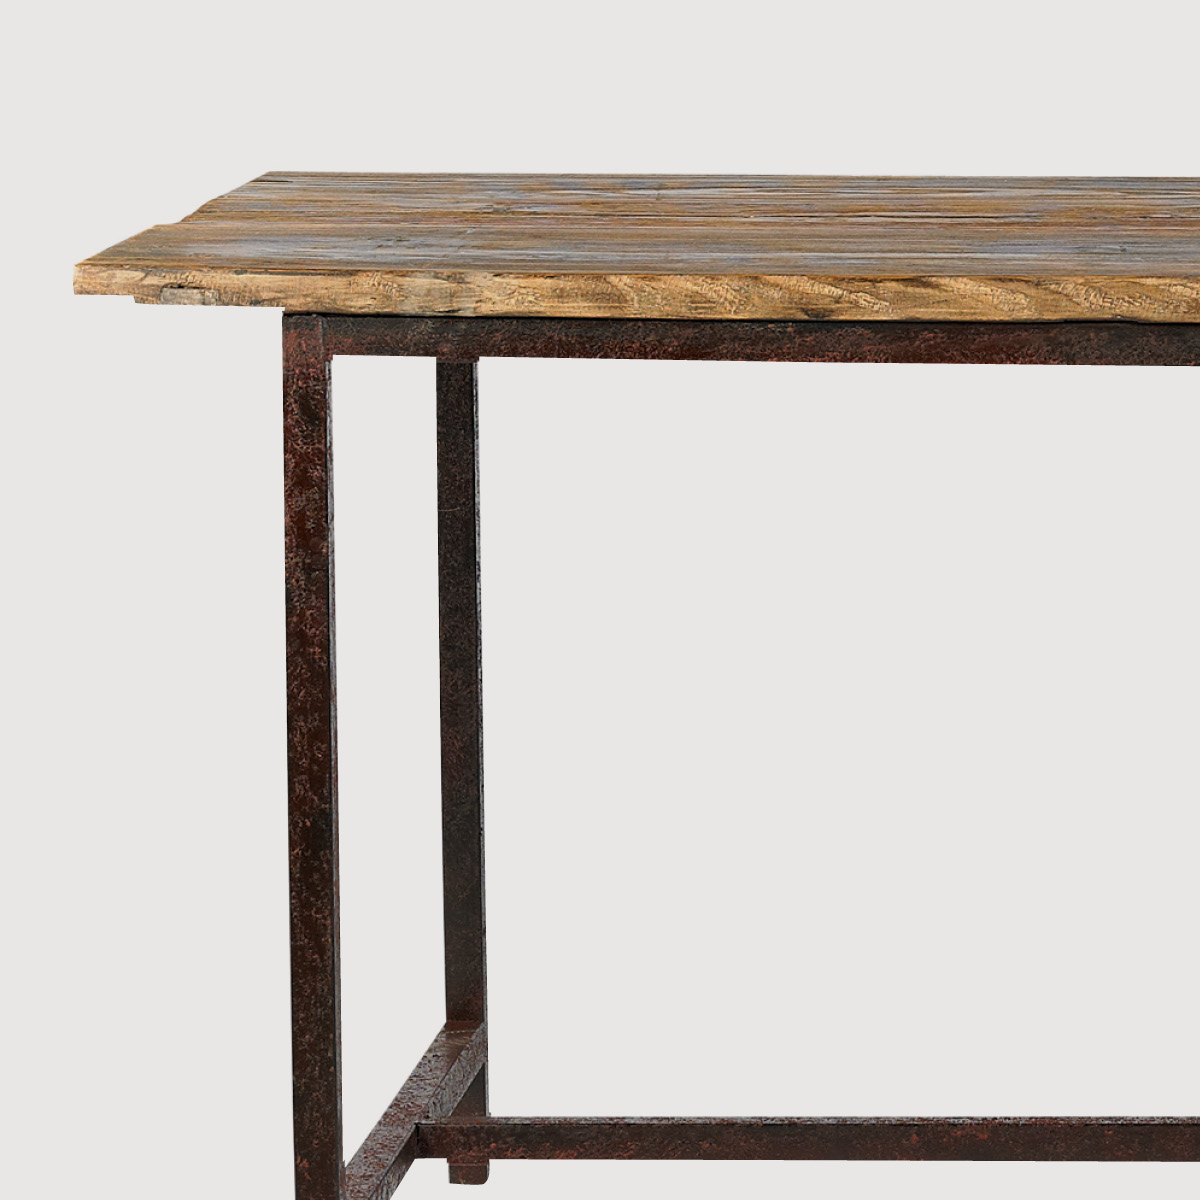 Rough Pine Dining Table gallery image